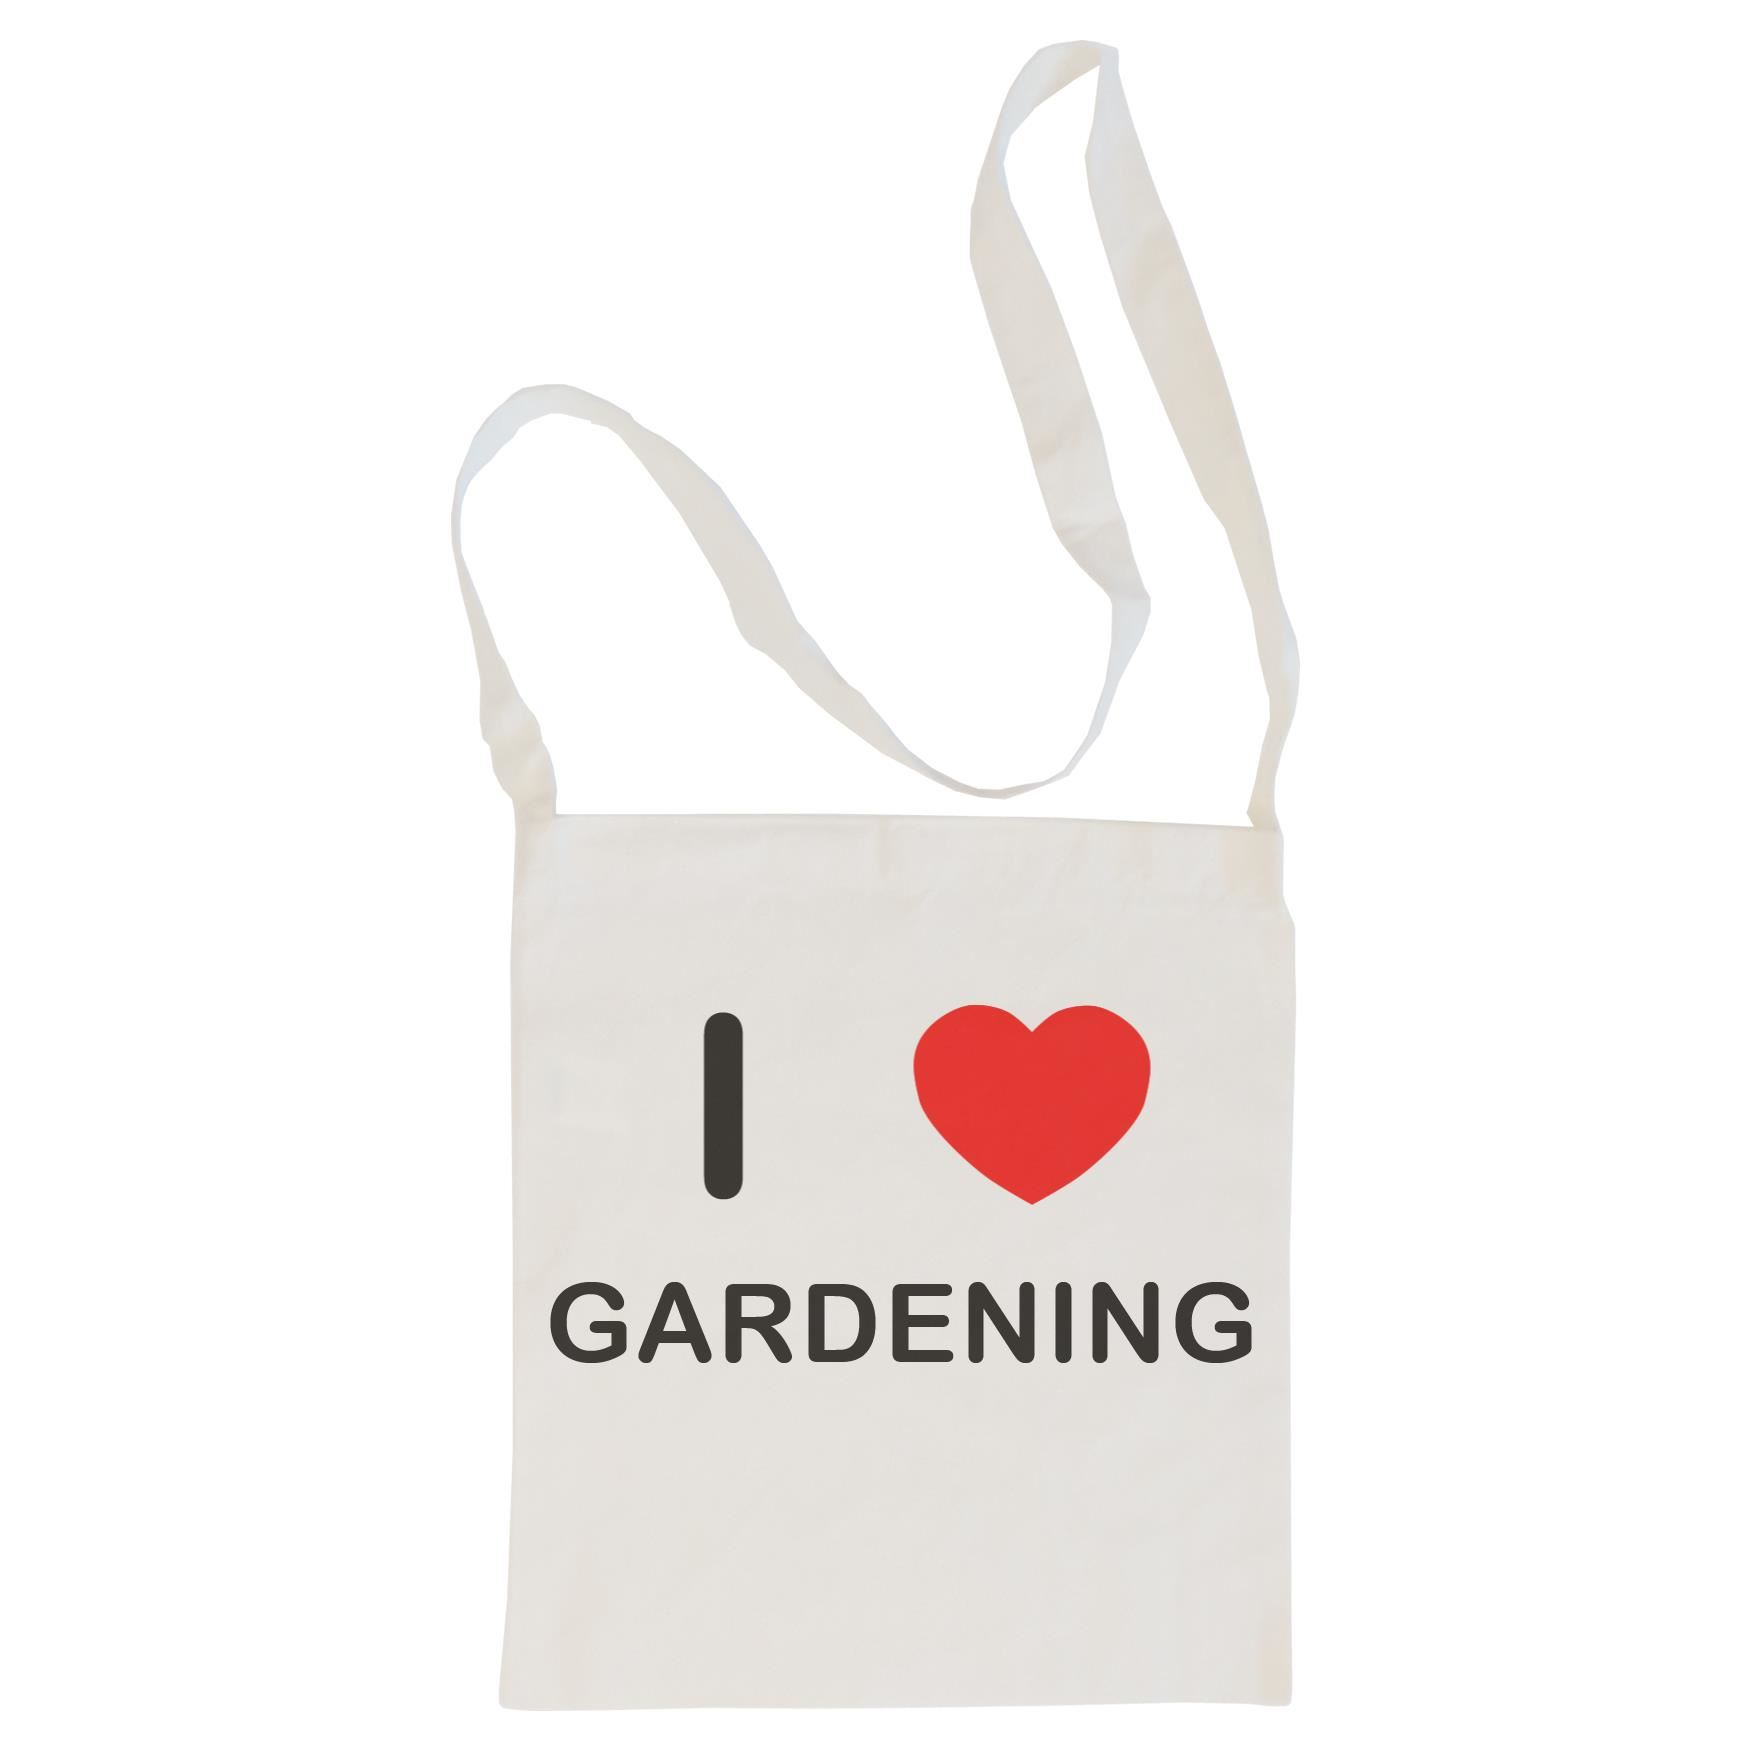 I Love Gardening - Cotton Bag | Size choice Tote, Shopper or Sling